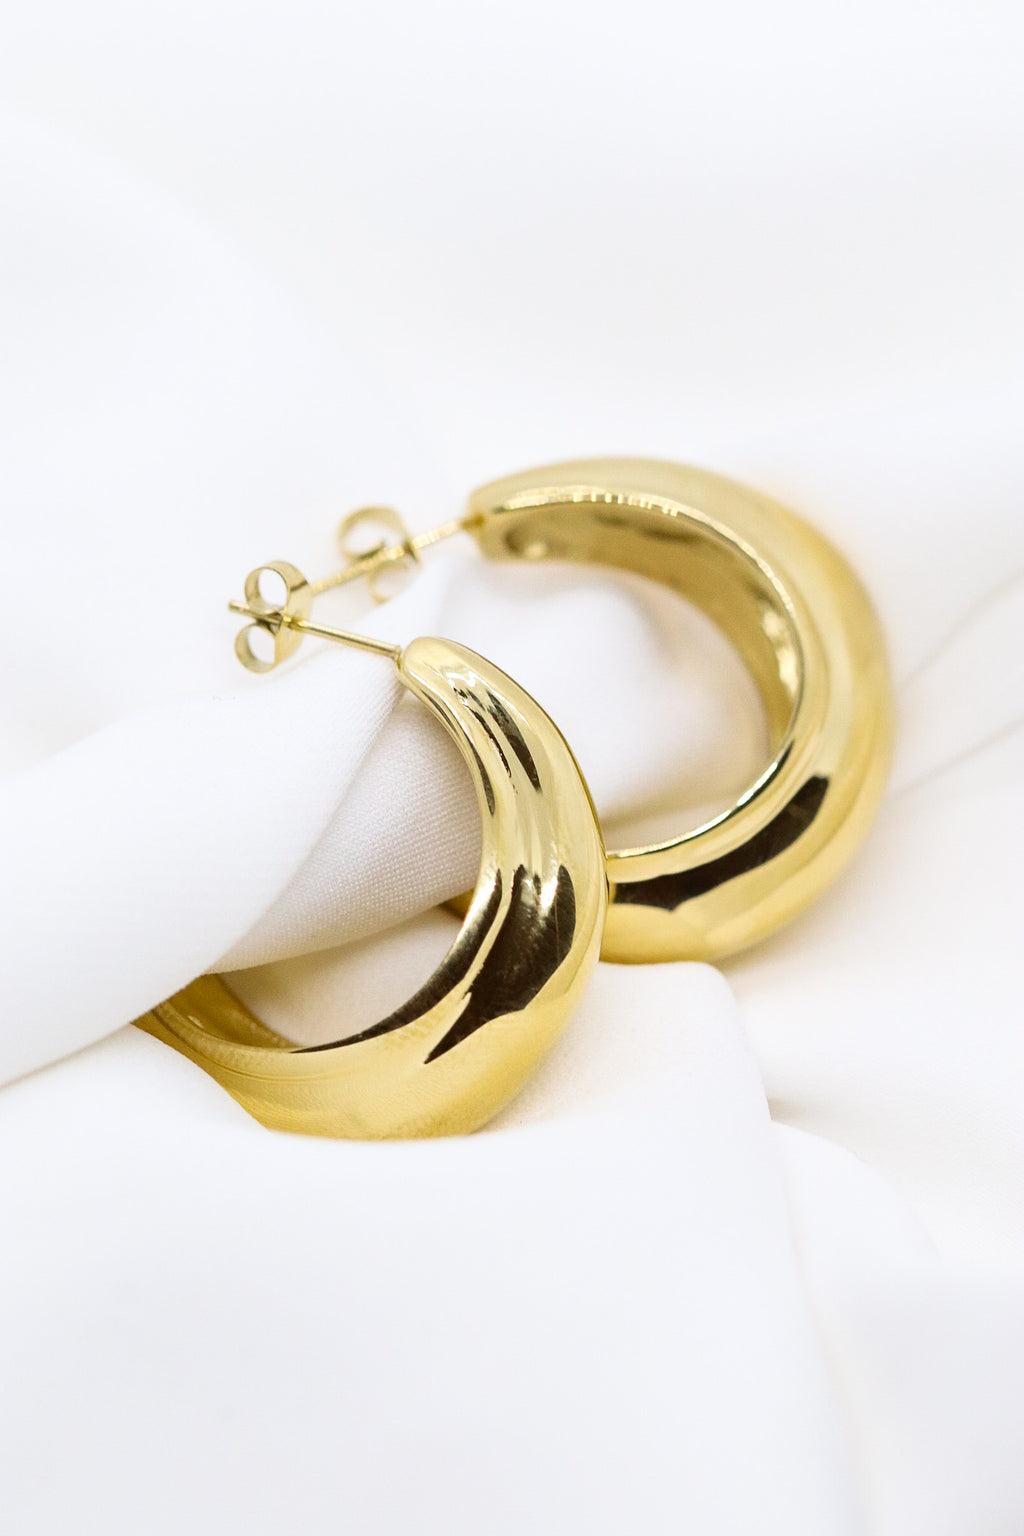 HALO HOOPS - Taimana Boutique